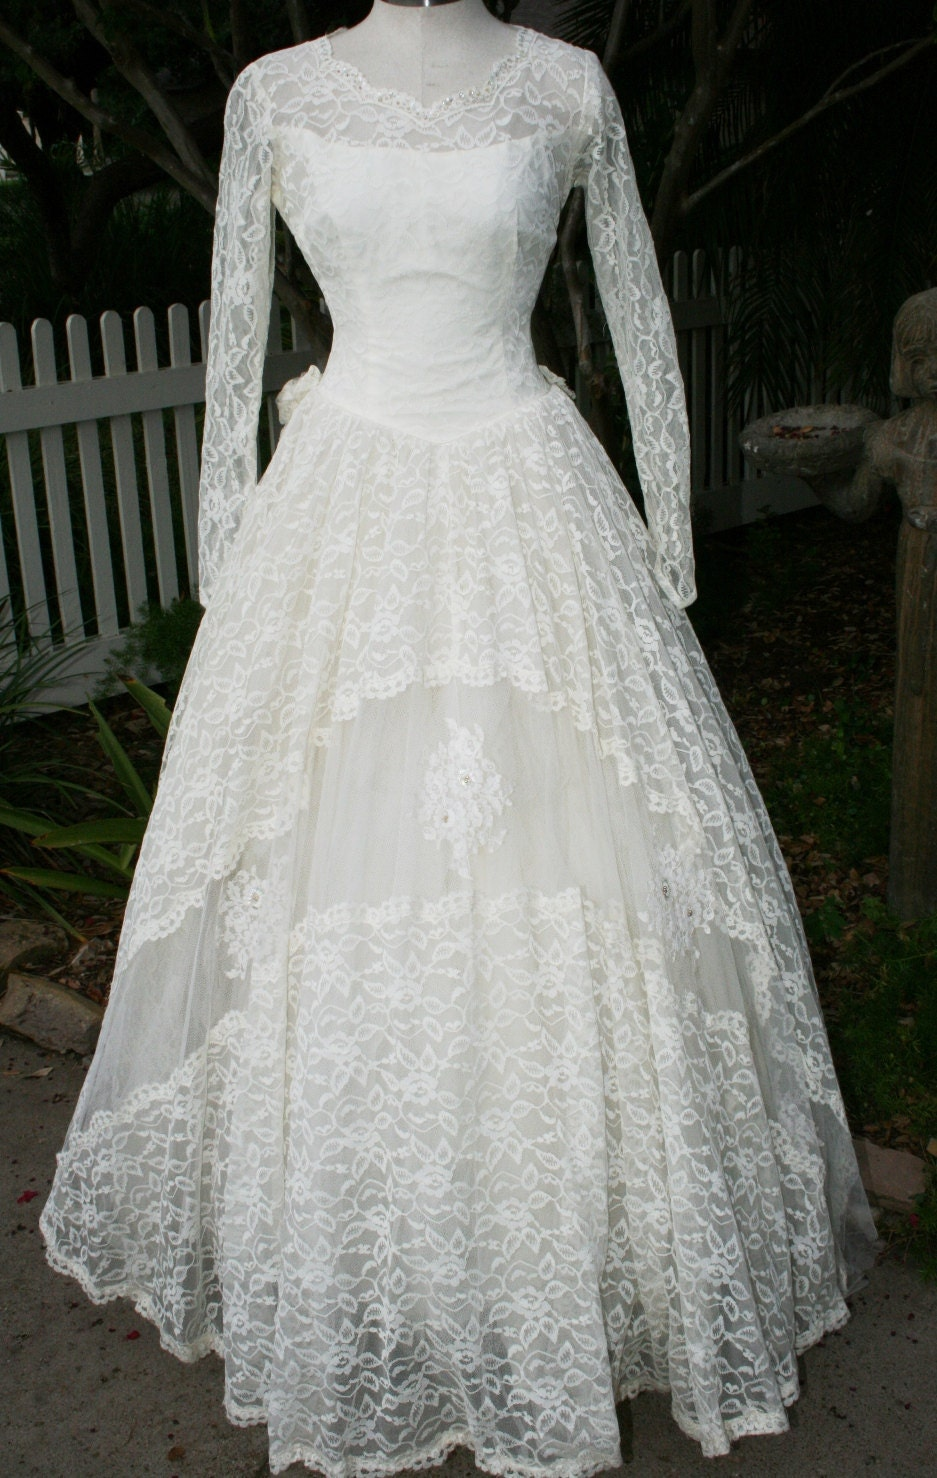 Vintage Wedding Dresses From The 1950 S : S wedding gown cupcake chantilly lace vintage